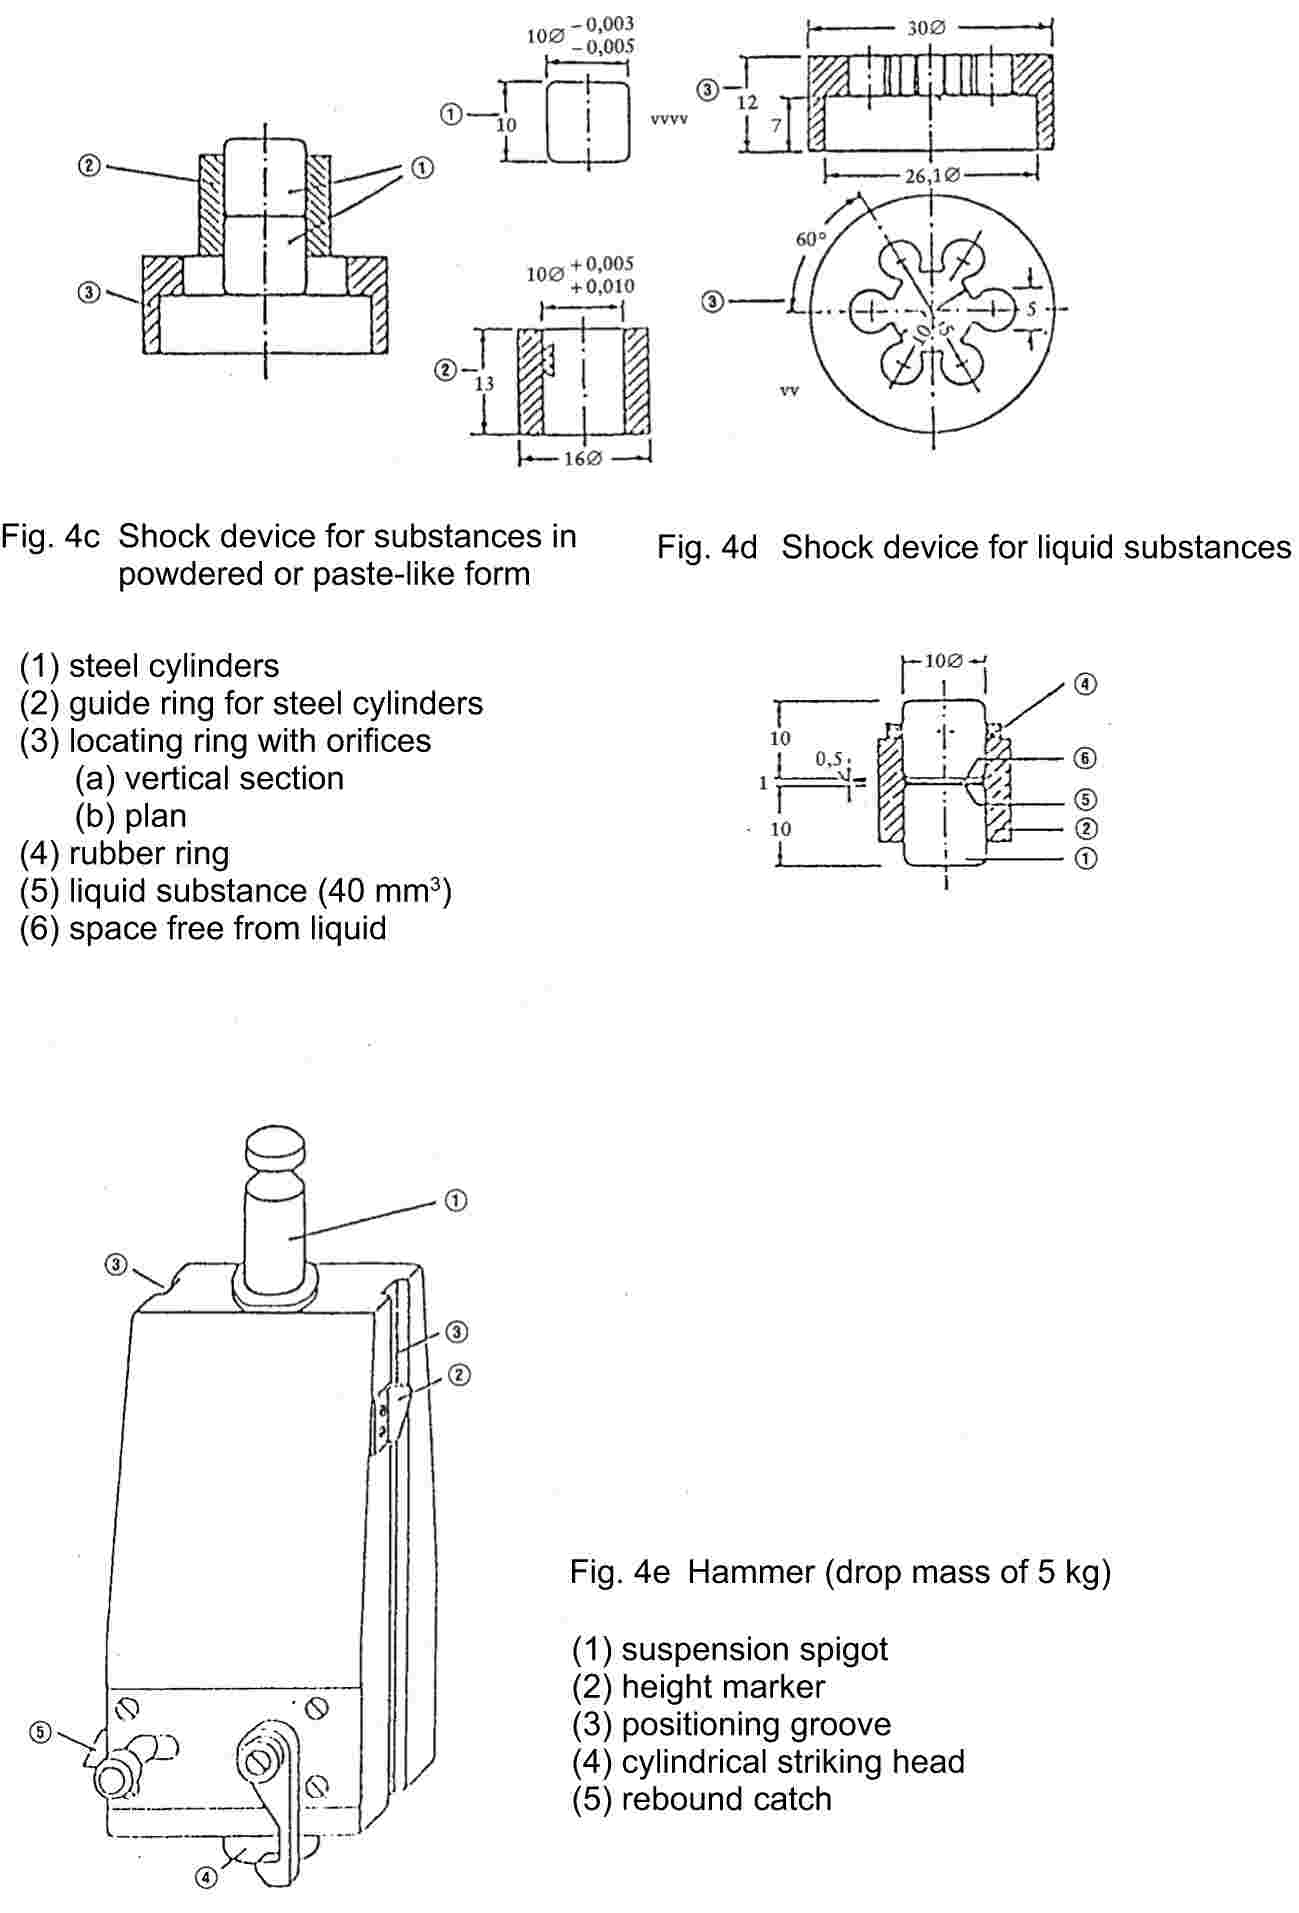 Fig. 4c Shock device for substances in powdered or paste-like formFig. 4d Shock device for liquid substances(1) steel cylinders(2) guide ring for steel cylinders(3) locating ring with orifices(a) vertical section(b) plan(4) rubber ring(5) liquid substance (40 mm3)(6) space free from liquidFig. 4e Hammer (drop mass of 5 kg)(1) suspension spigot(2) height marker(3) positioning groove(4) cylindrical striking head(5) rebound catch